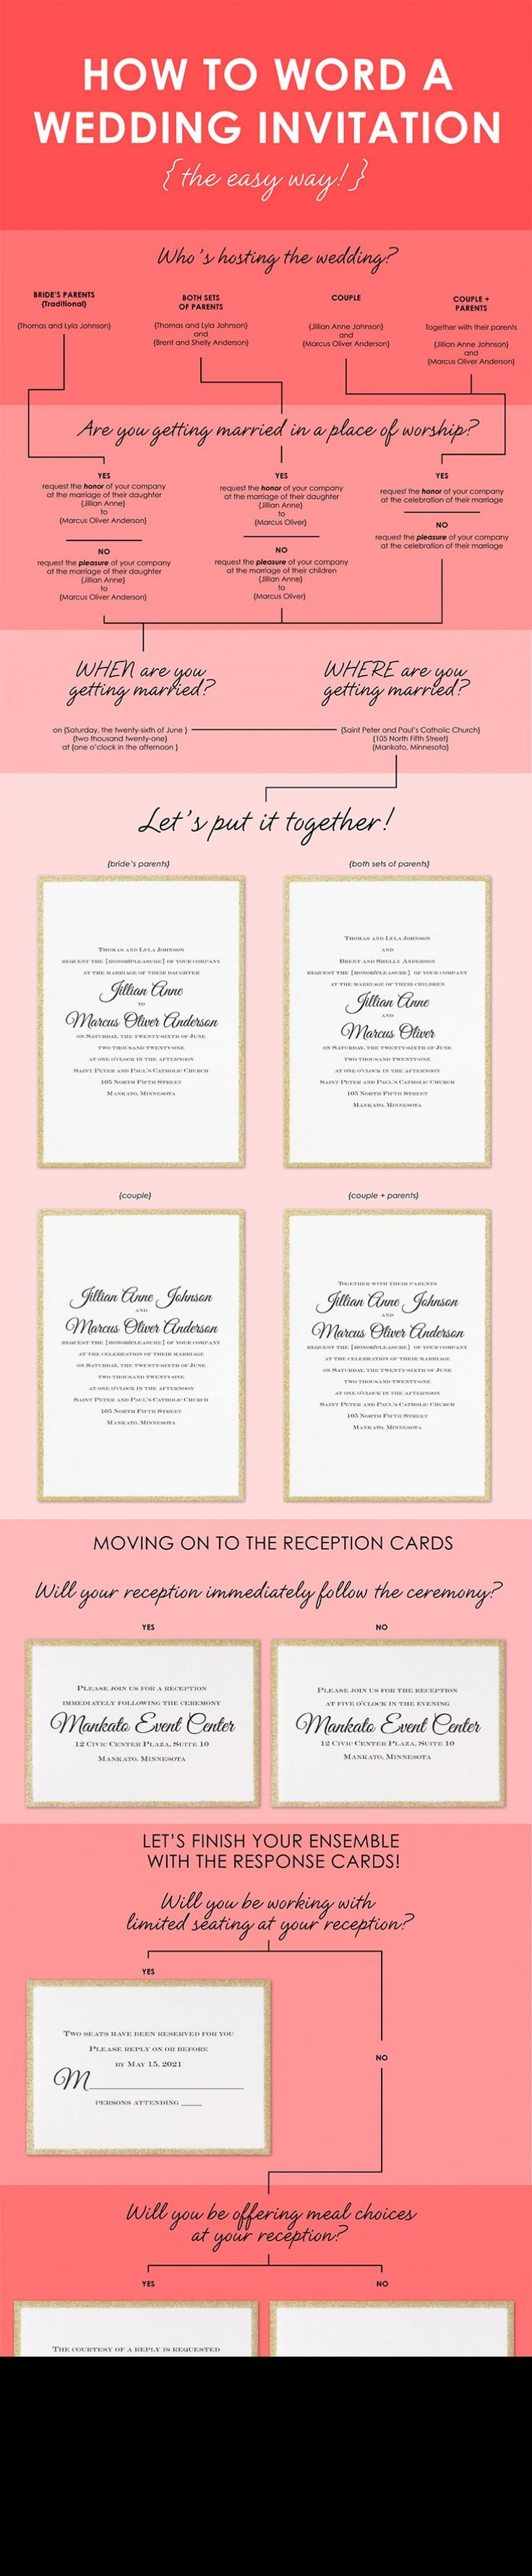 Wedding Invite Etiquette Wording: Best 25+ Wedding Invitation Wording Ideas On Pinterest